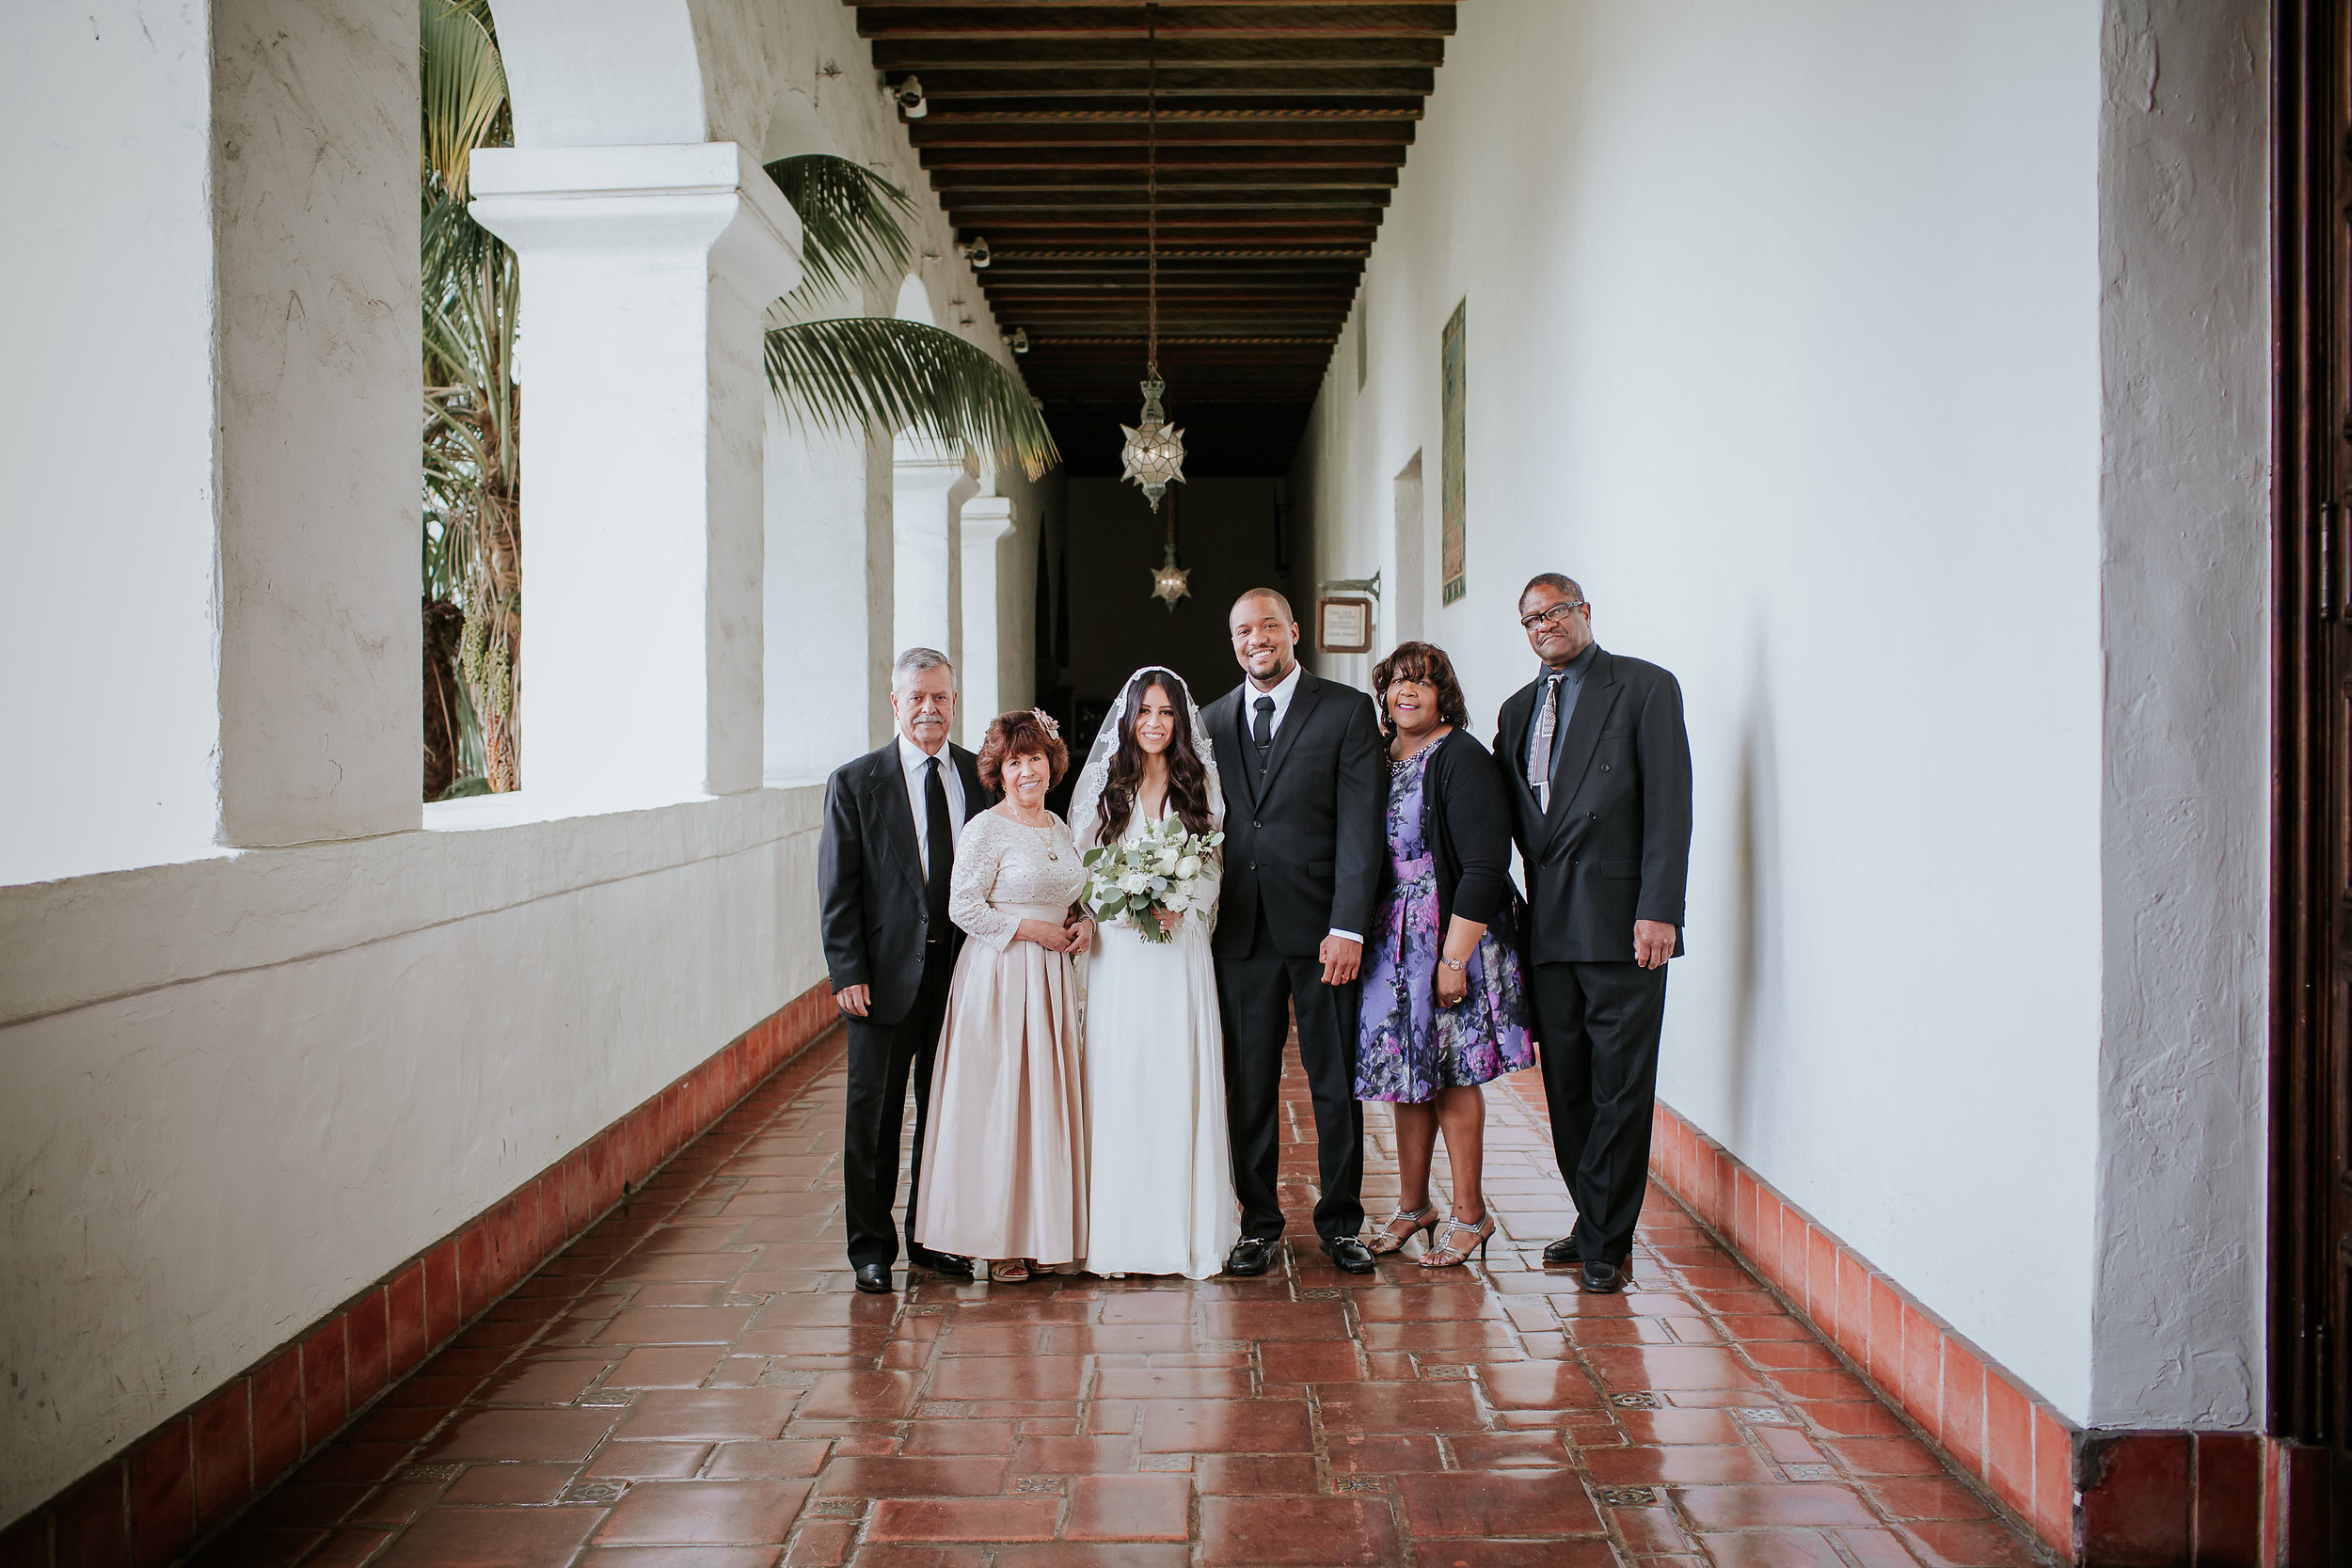 GabrielaandDeJuansantabarbaracourthouseweddingstellamaresweddingelopement-225.jpg